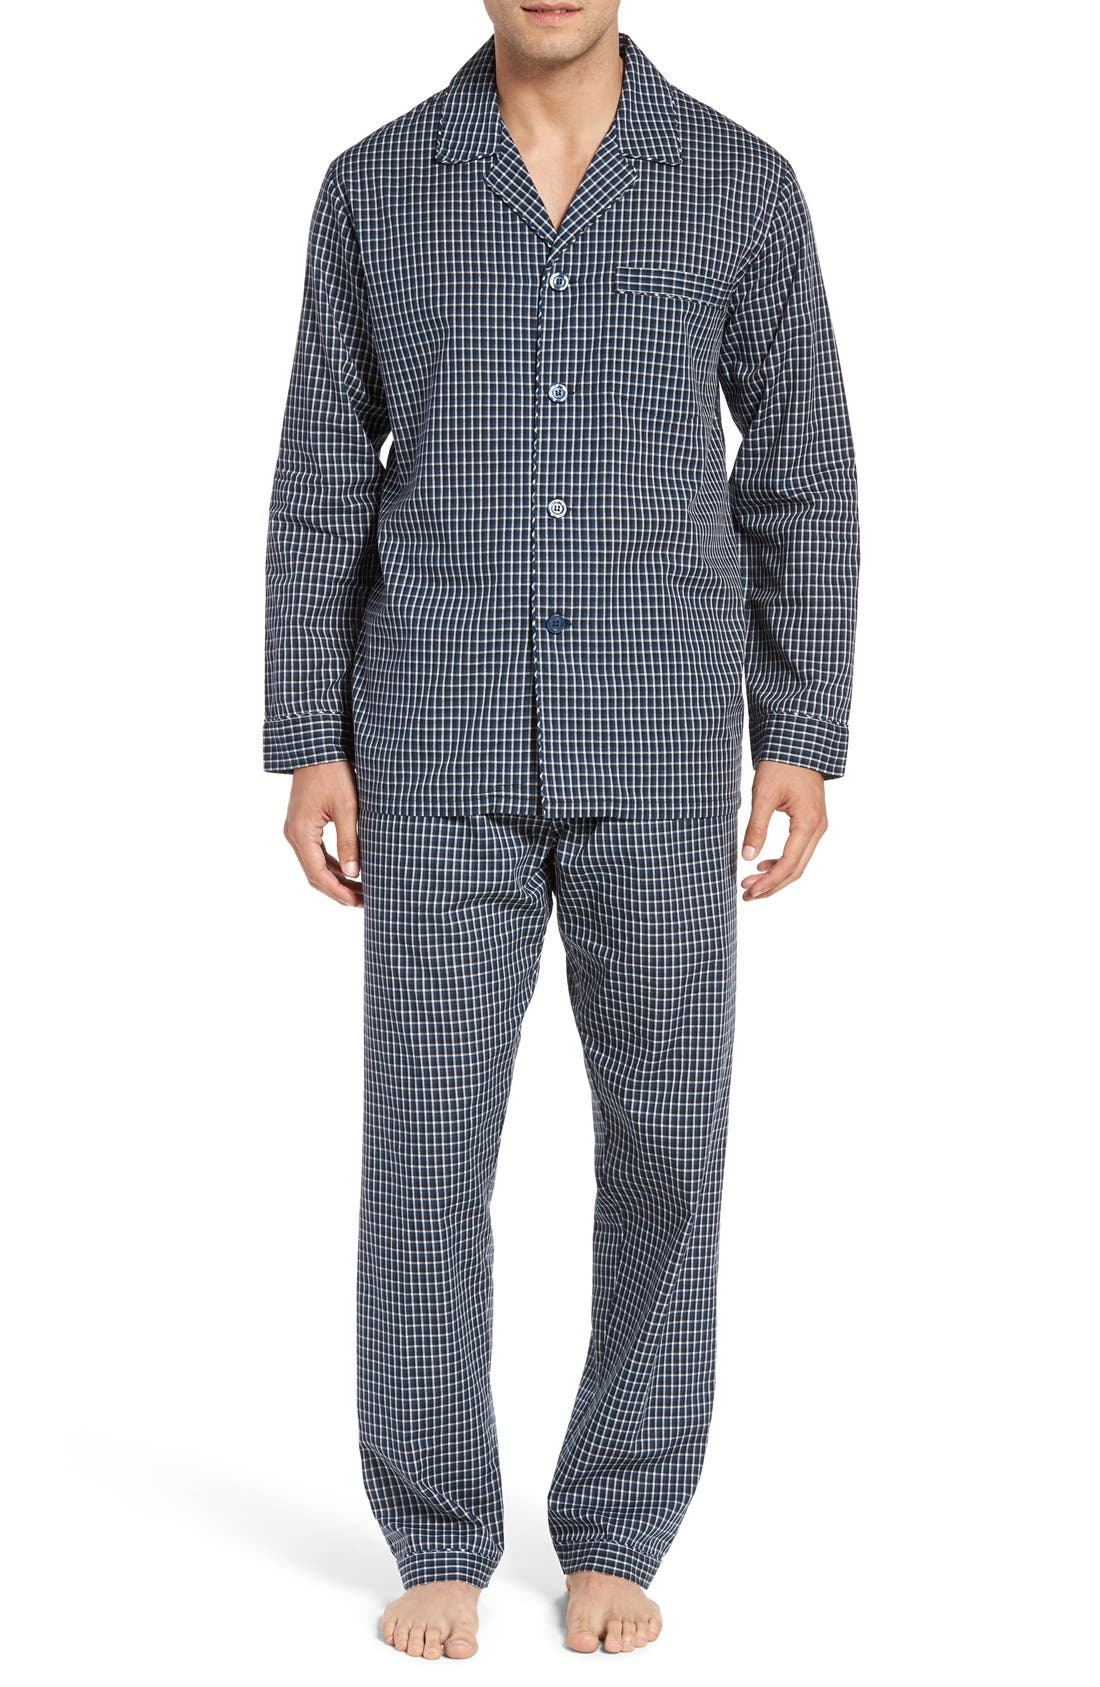 'CVC' Cotton Blend Pajamas,                             Main thumbnail 1, color,                             001